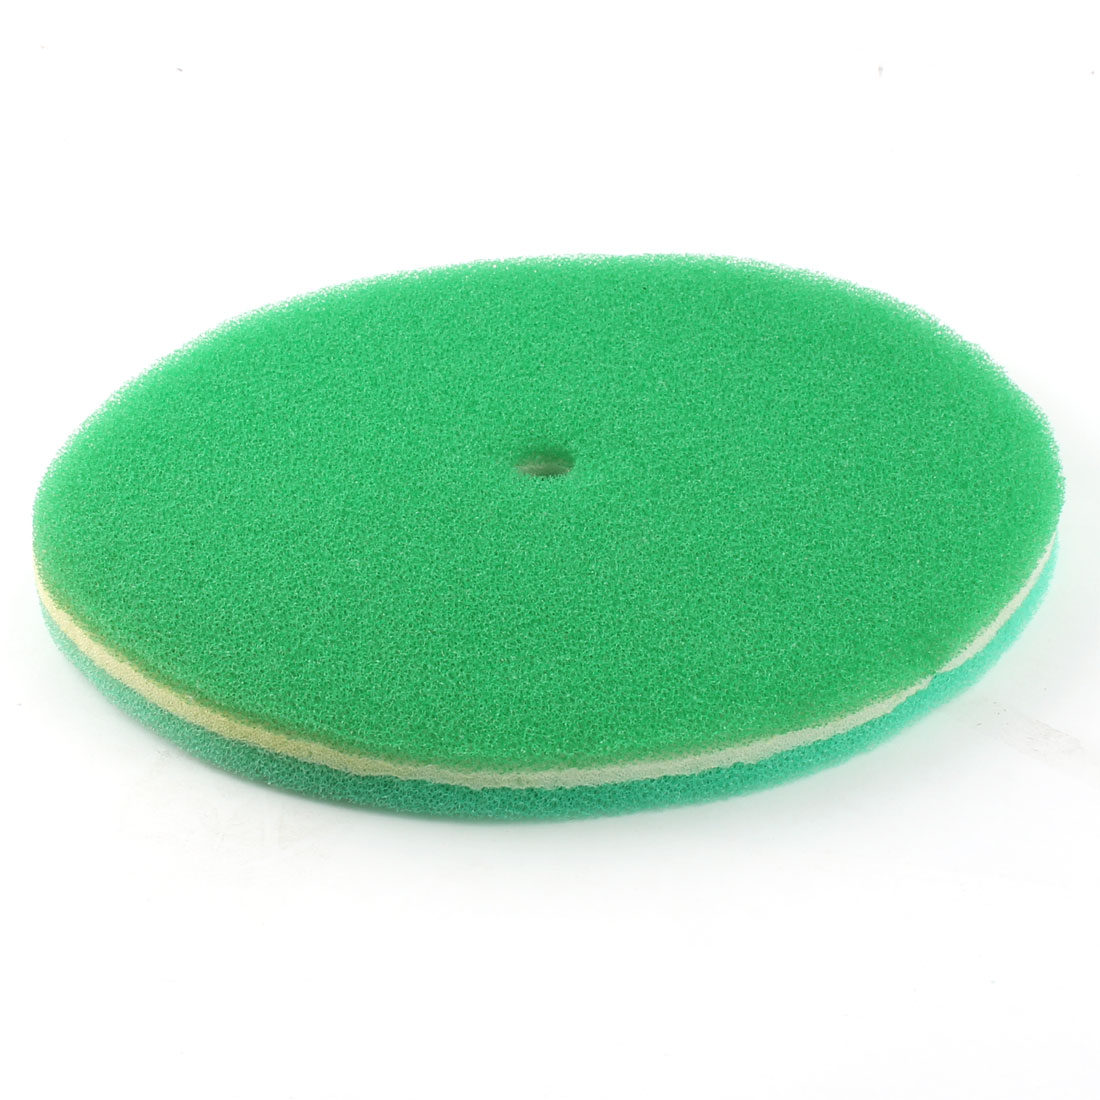 Modified Car Sponge Round Shape Mushroom Head Air Filter Replacement